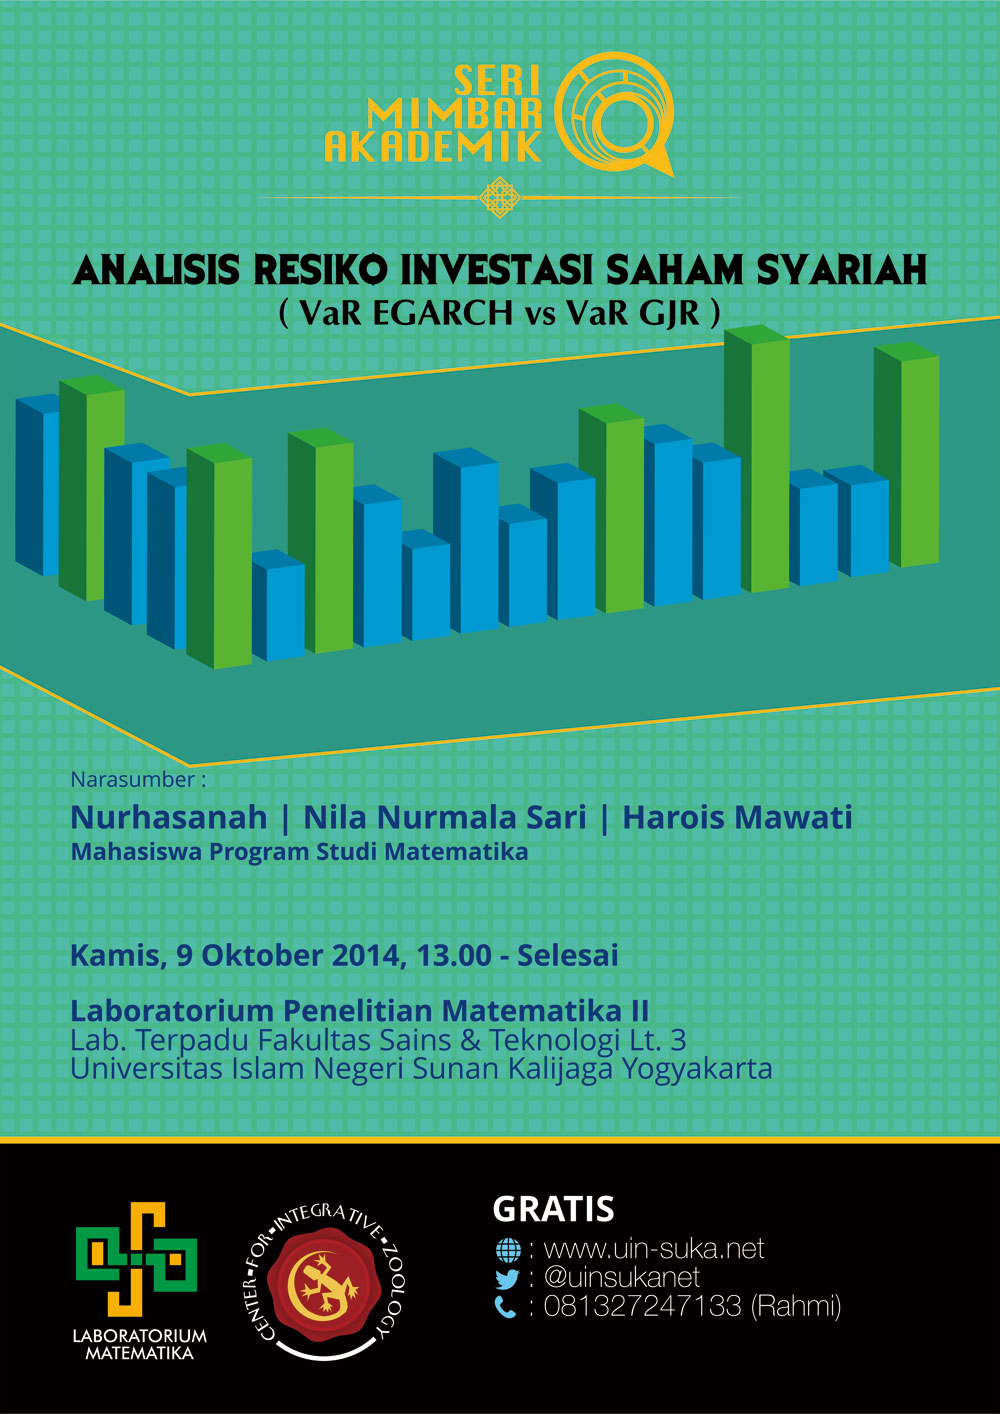 seri mimbar akademik analisis resiko investasi saham syariah var egarch vs var gjr- uin-suka net - laboratorium matematika - center for integrative zoology